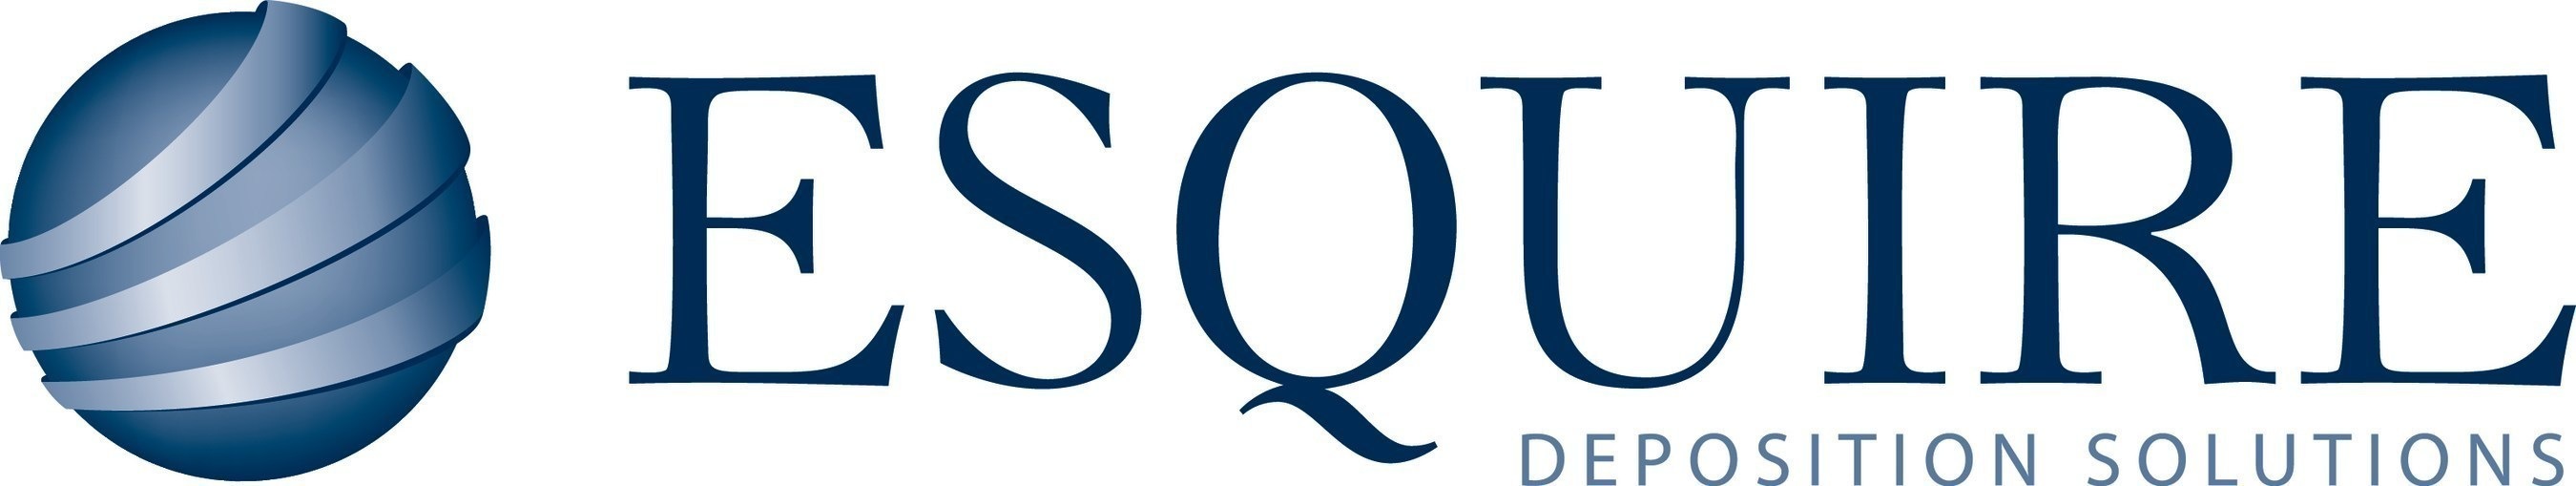 Esquire Deposition Solutions logo